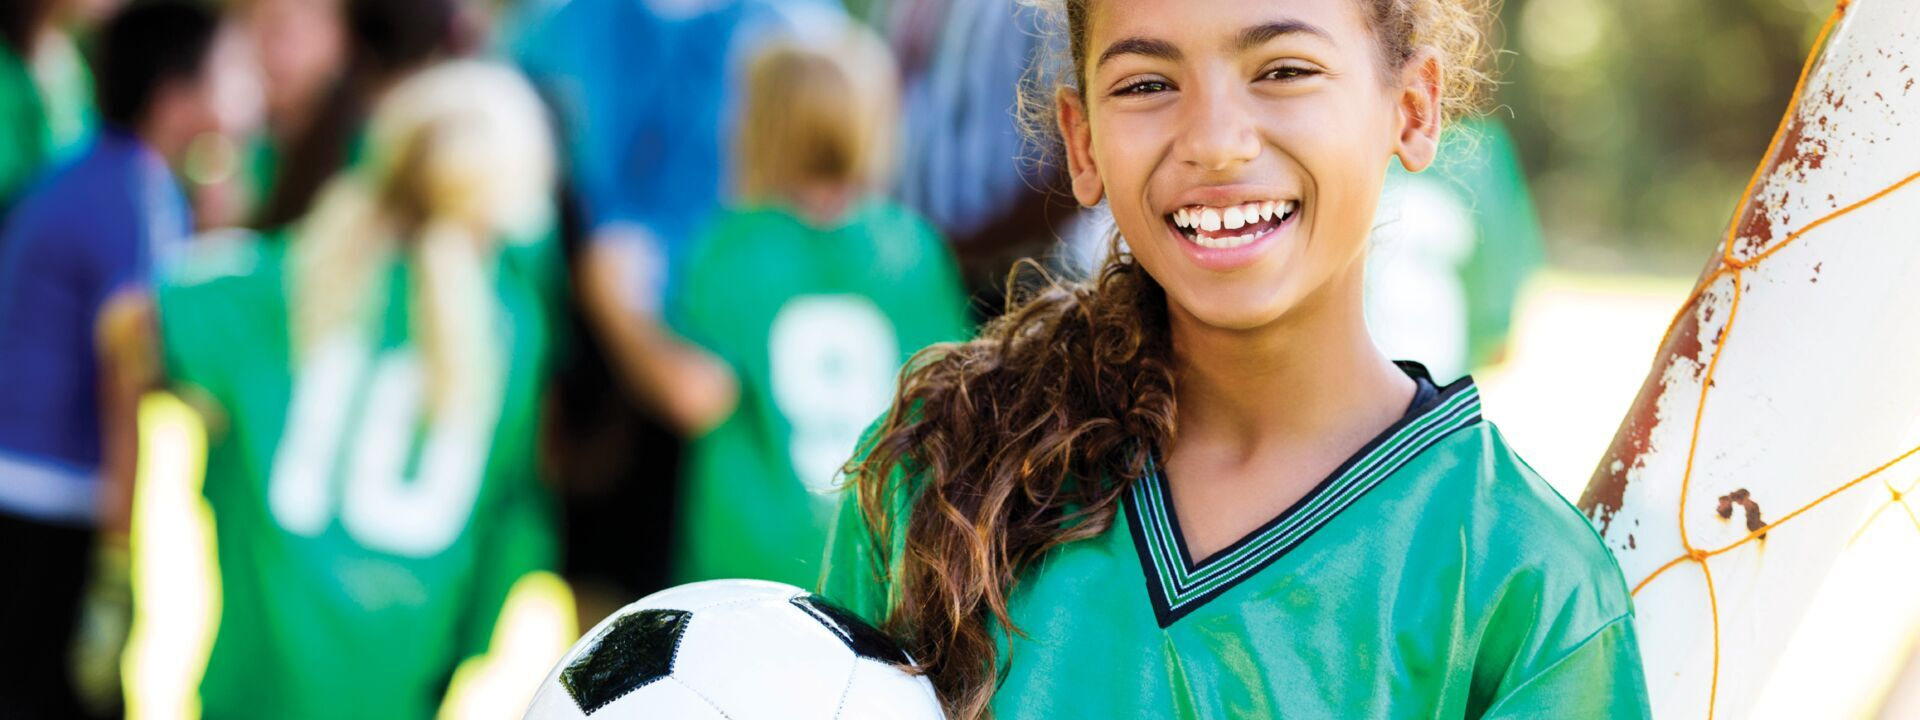 A girl with a soccer ball in her hand at YMCA recreational soccer